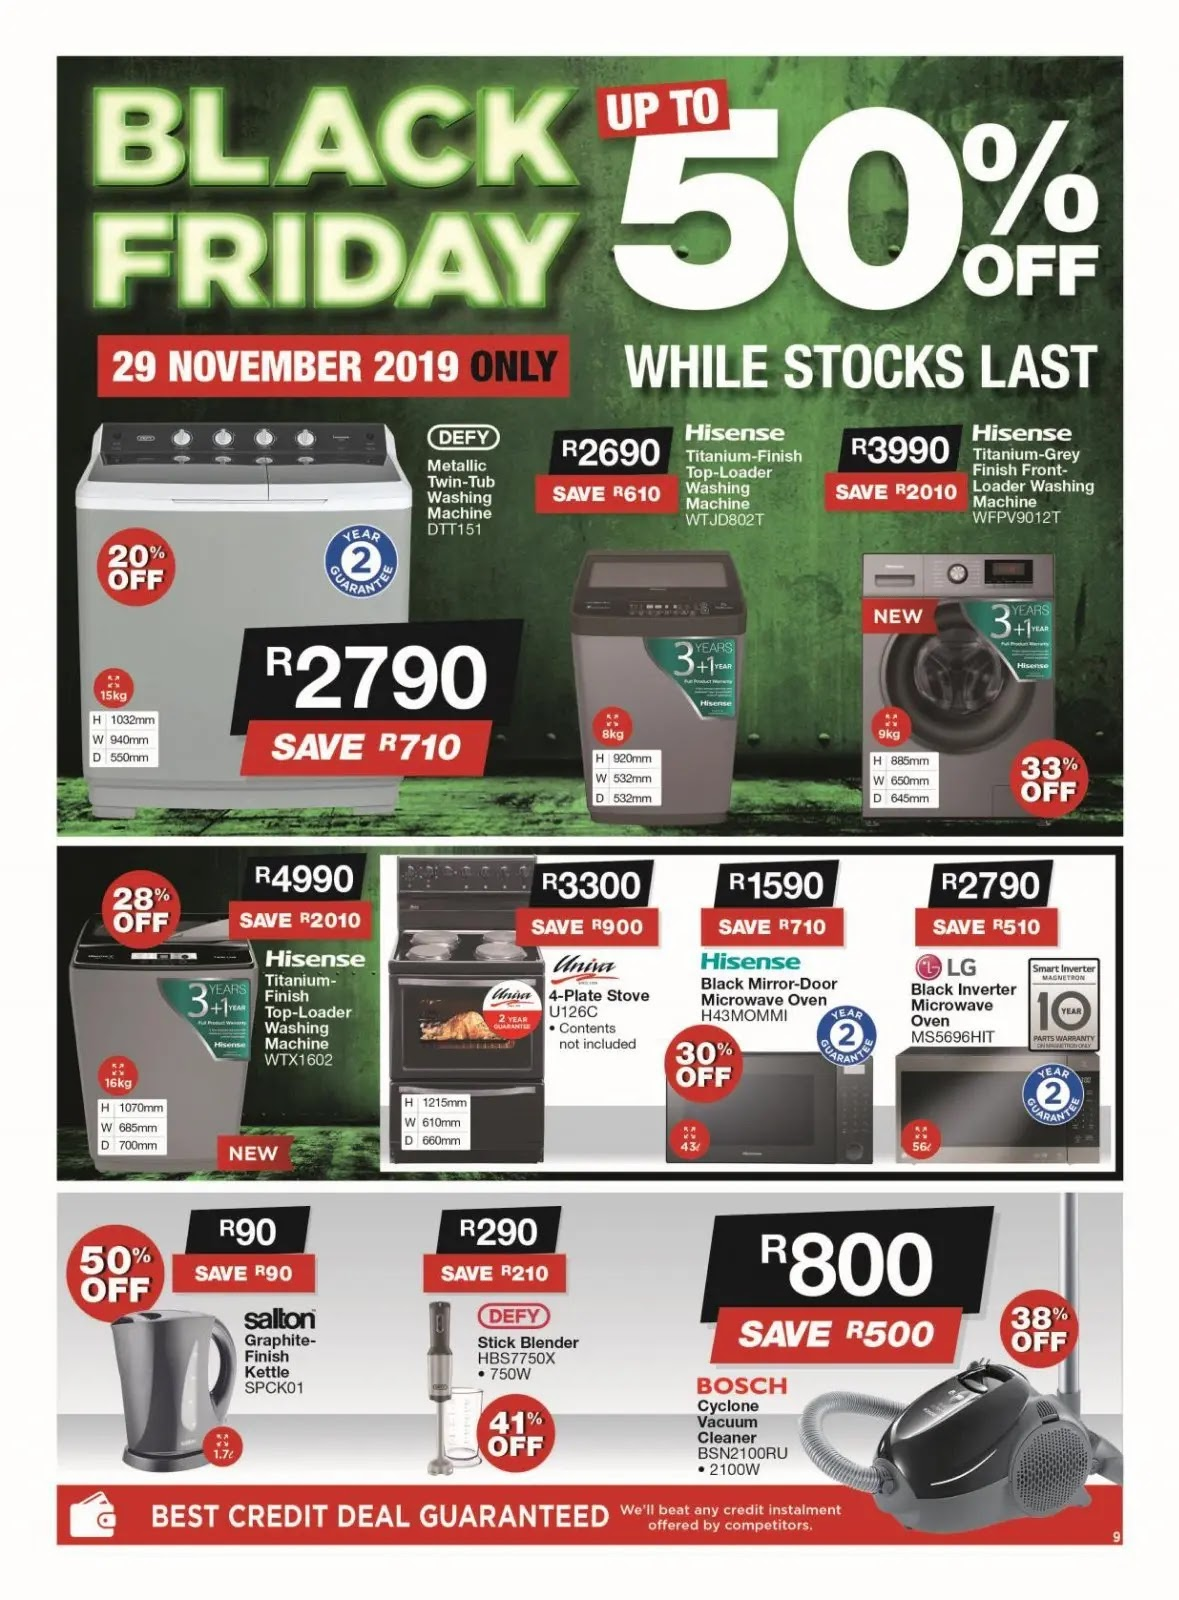 House & Home Black Friday Deals Page 5